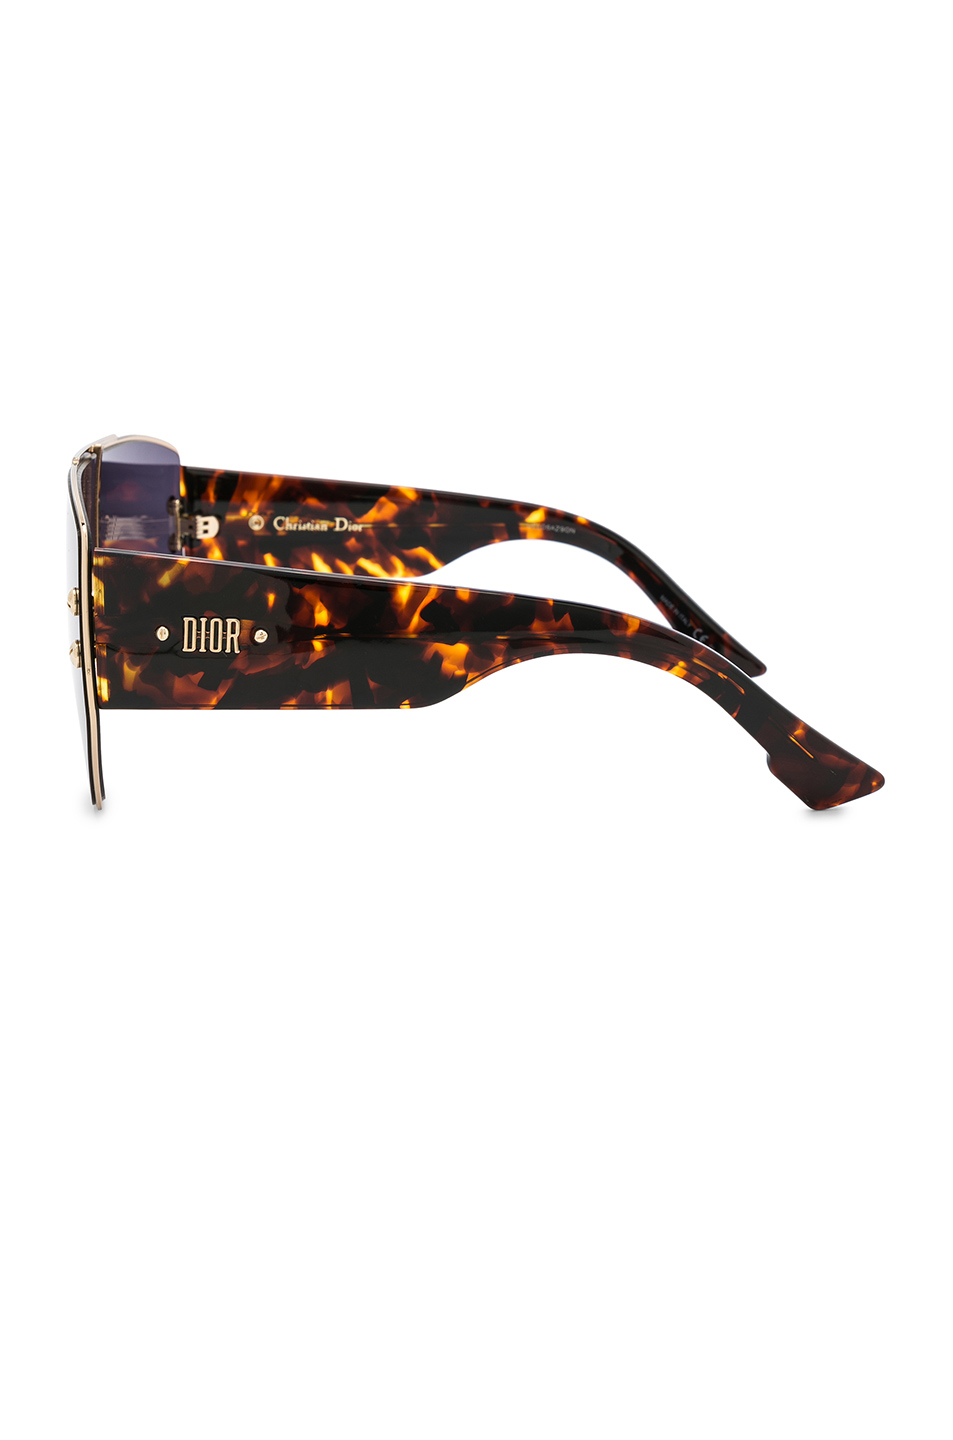 ad43d2965793 Buy Original Dior Addict 1 Sunglasses at Indonesia